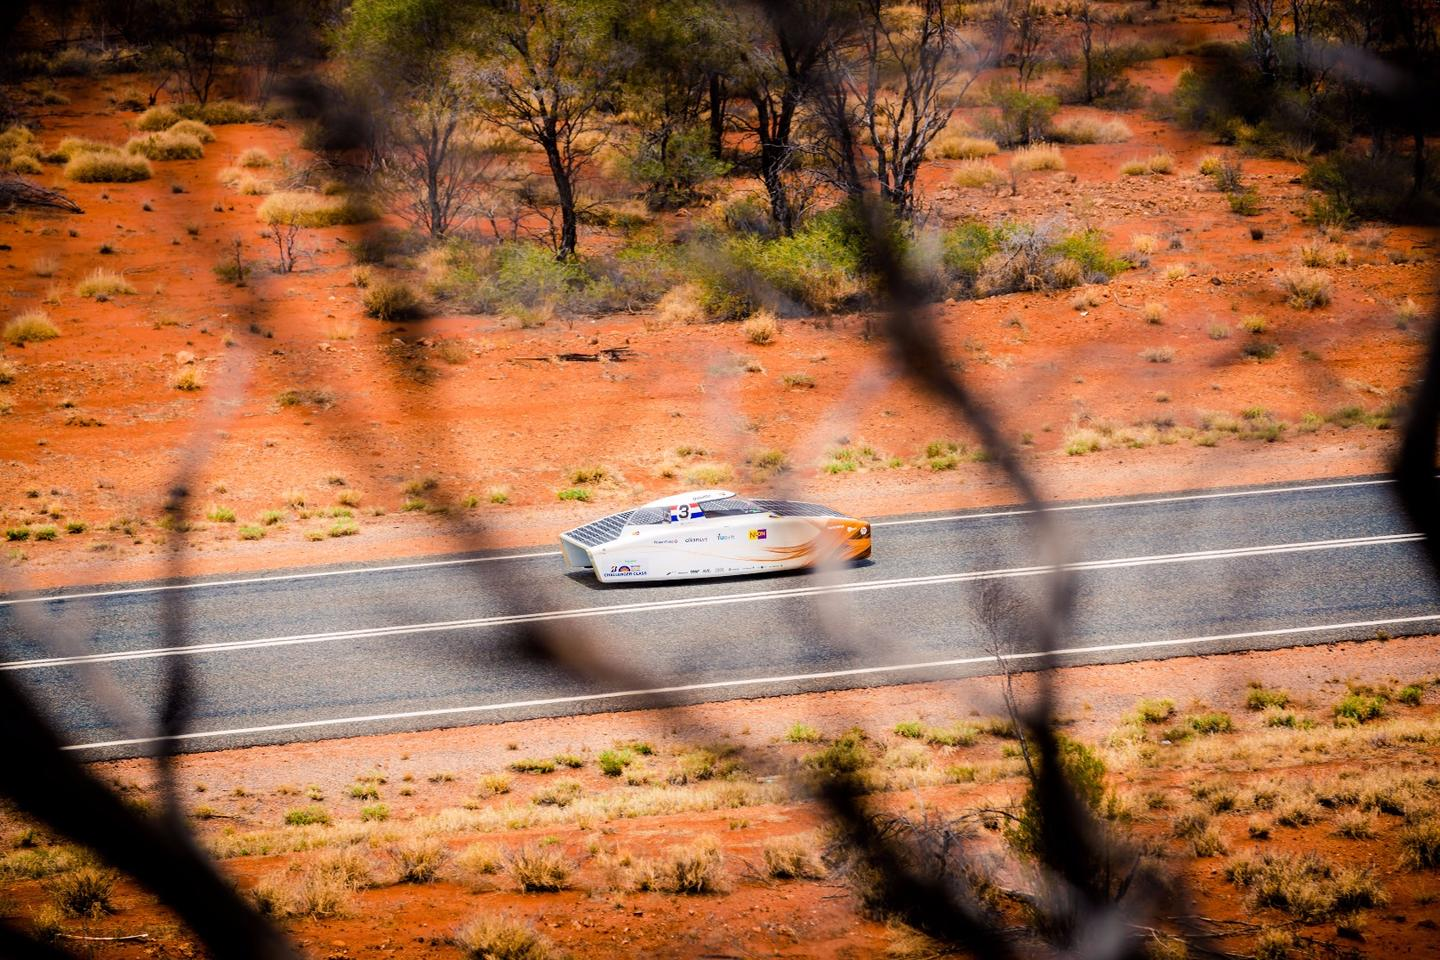 TheNuon Solar Team's Nuna9 car in action during the World Solar Challenge